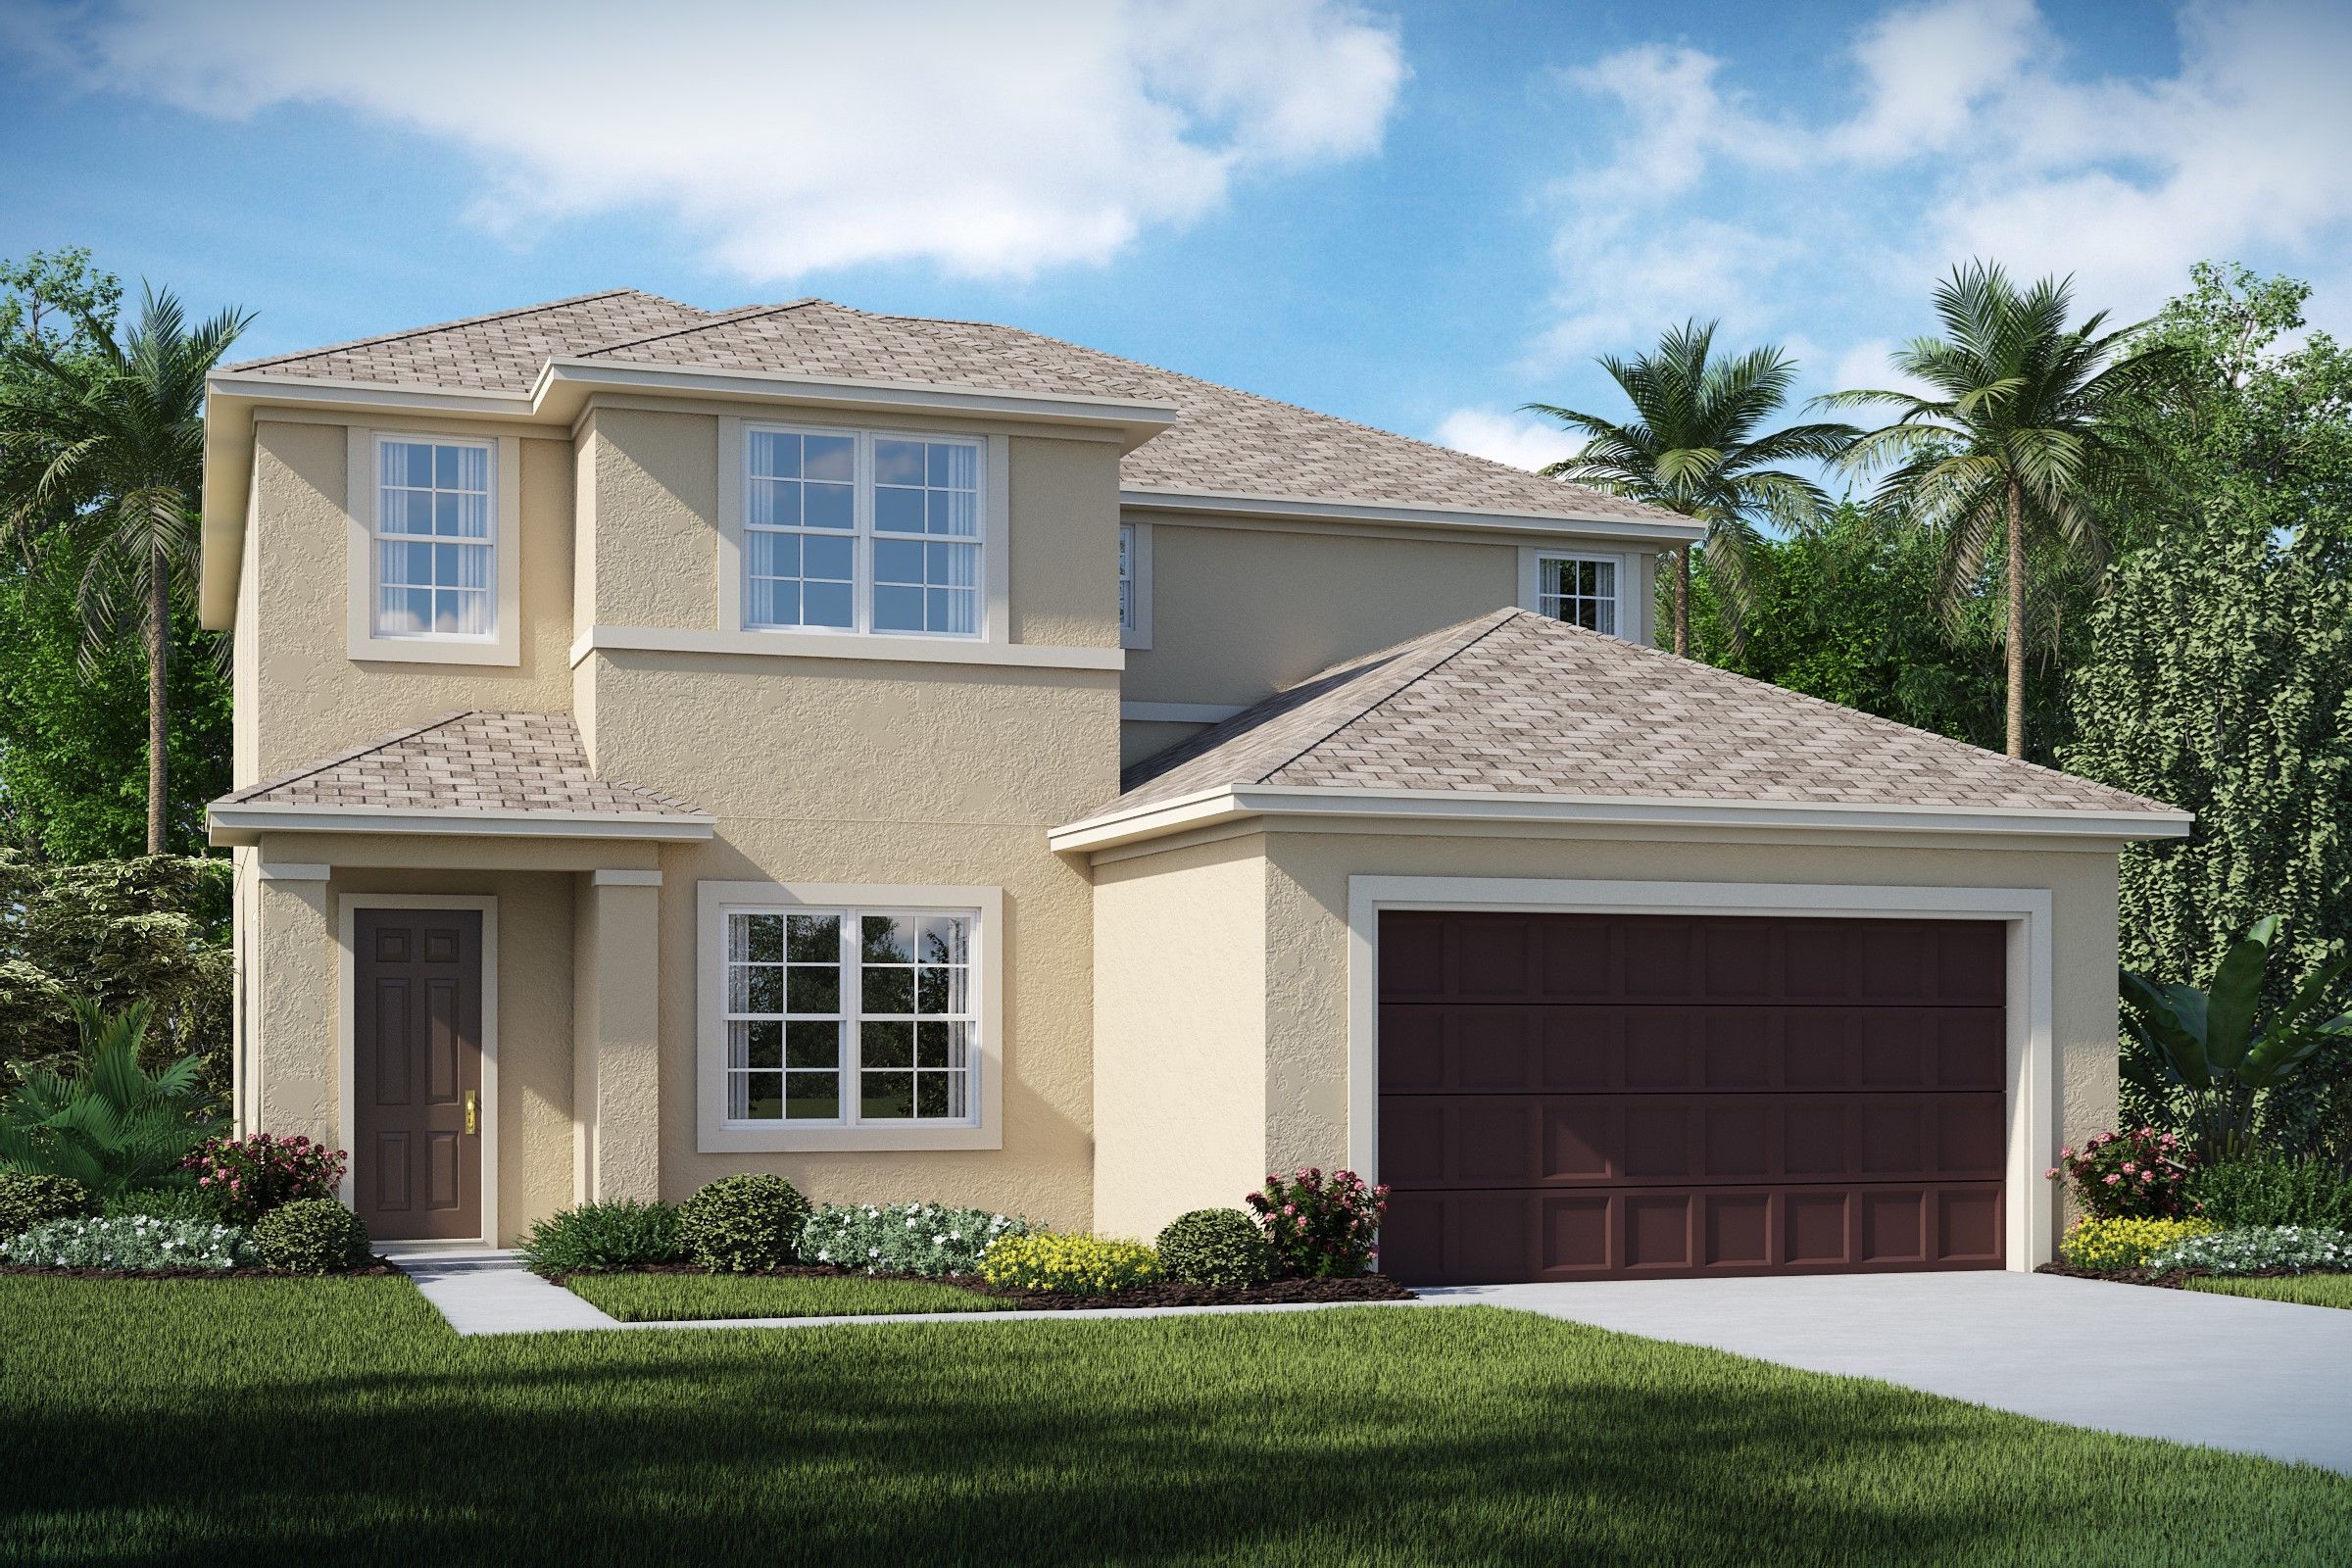 Design Your Own Dream Home Games   Hilltop Reserve By K Hovnanian Homes Gw  Estates U0026